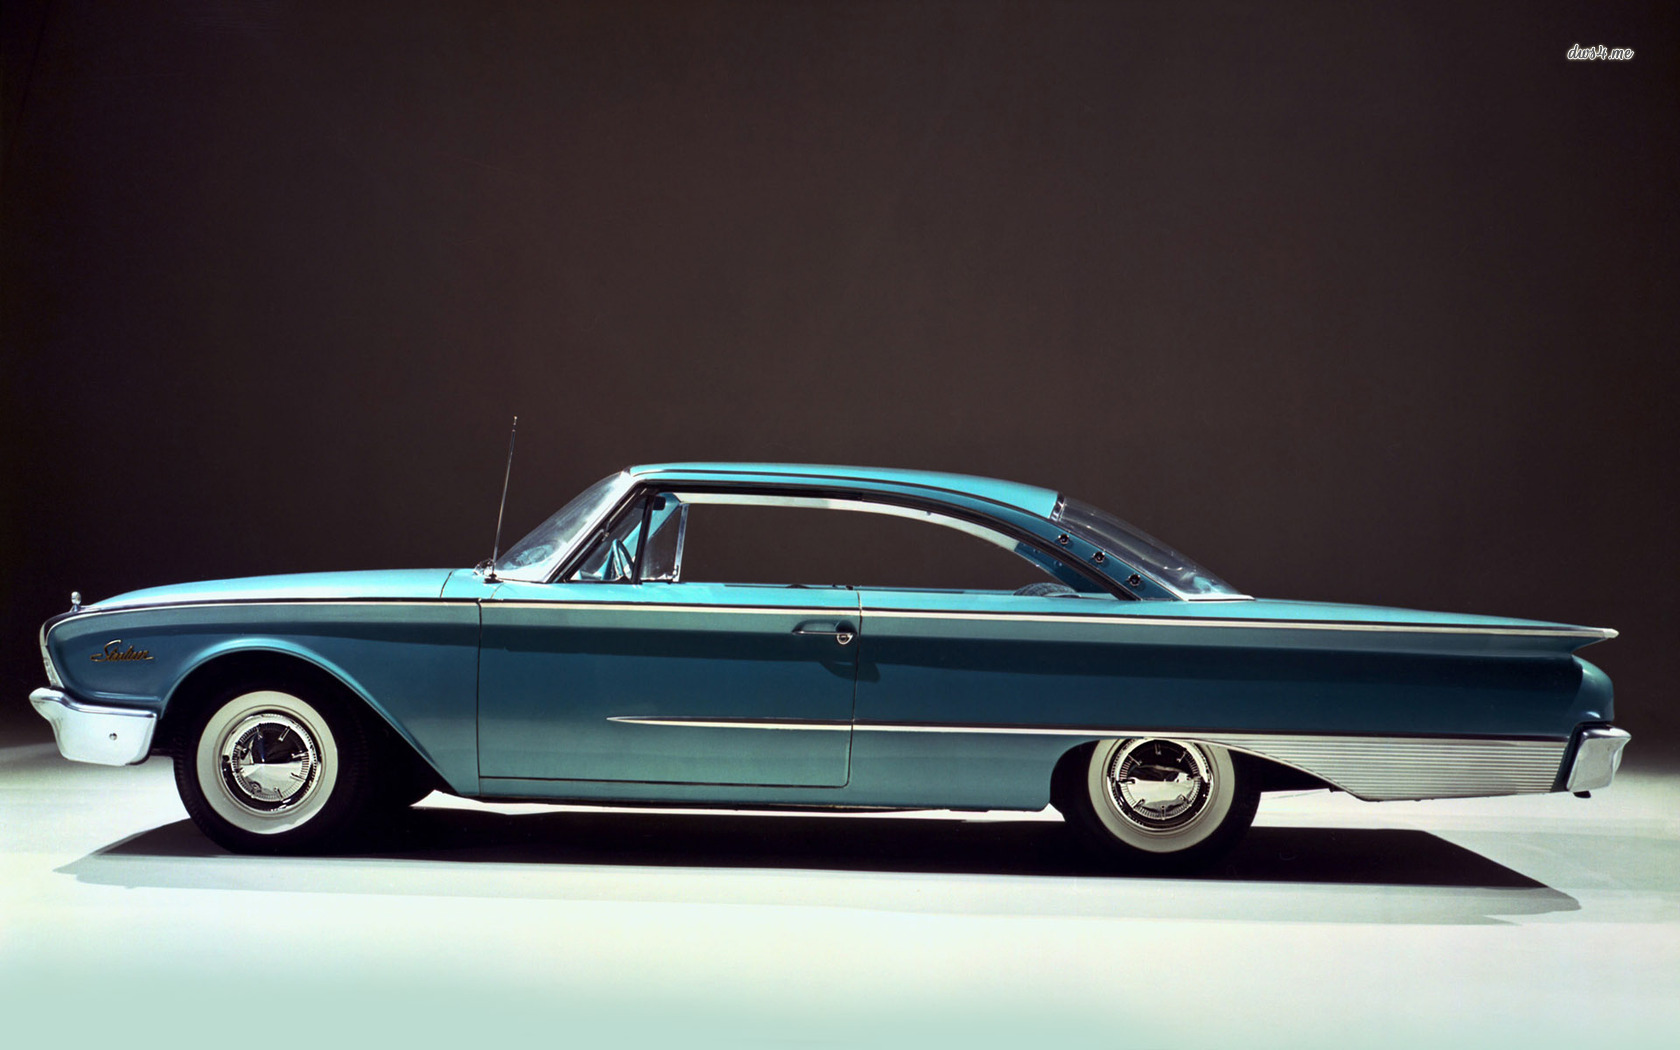 HQ 1960 Ford Galaxie Sunliner Wallpapers | File 271.84Kb